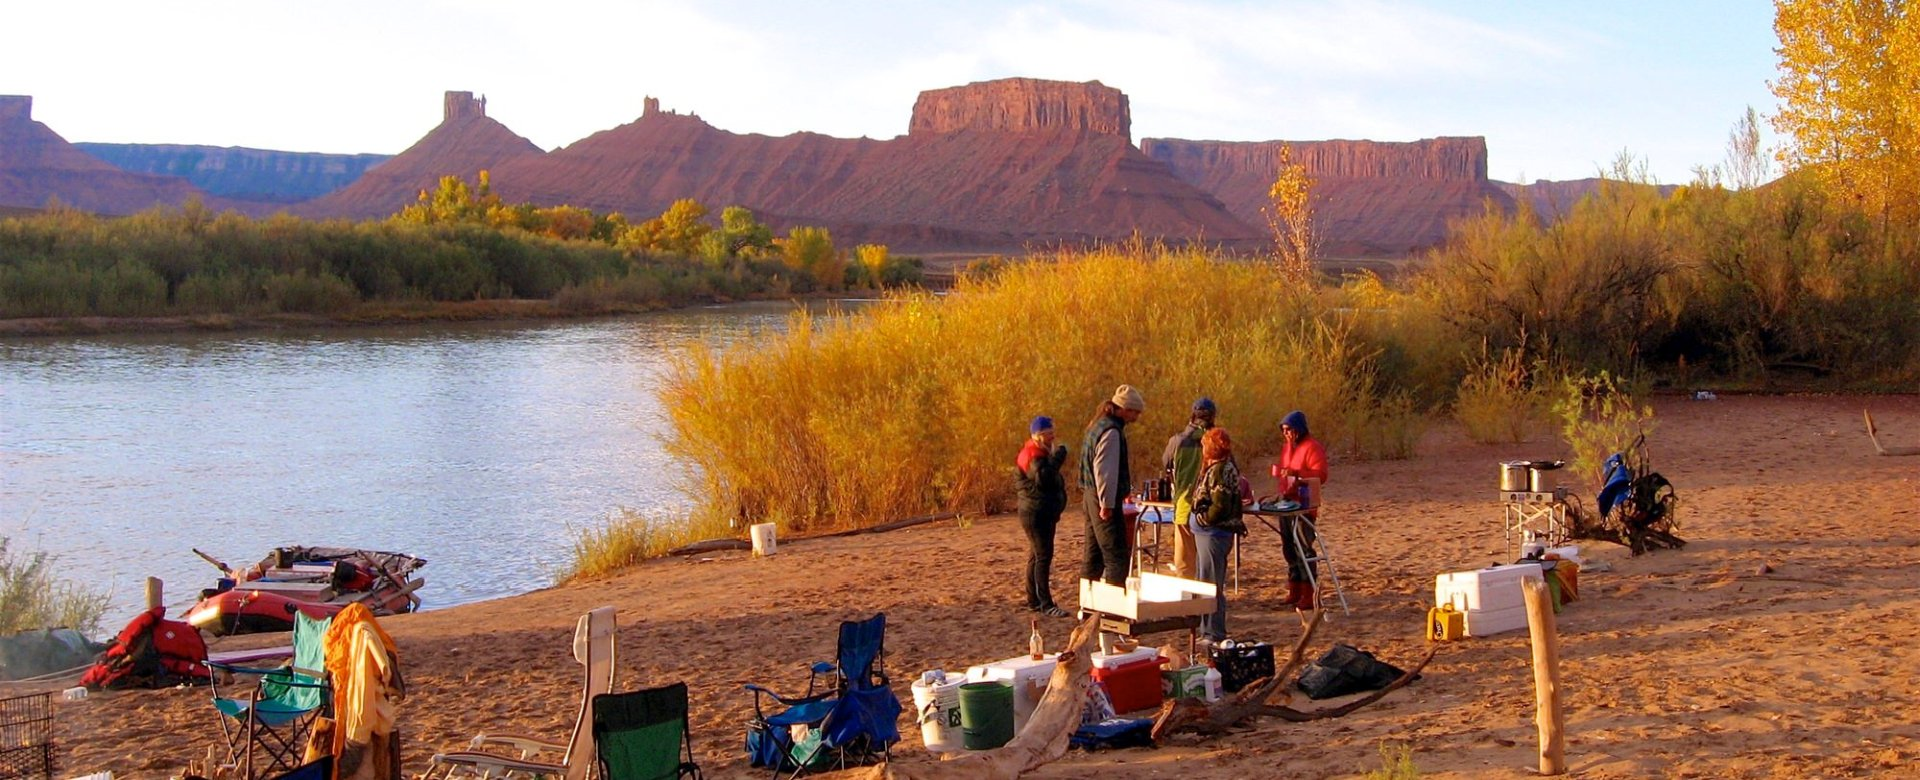 River Shuttles In Moab, Utah